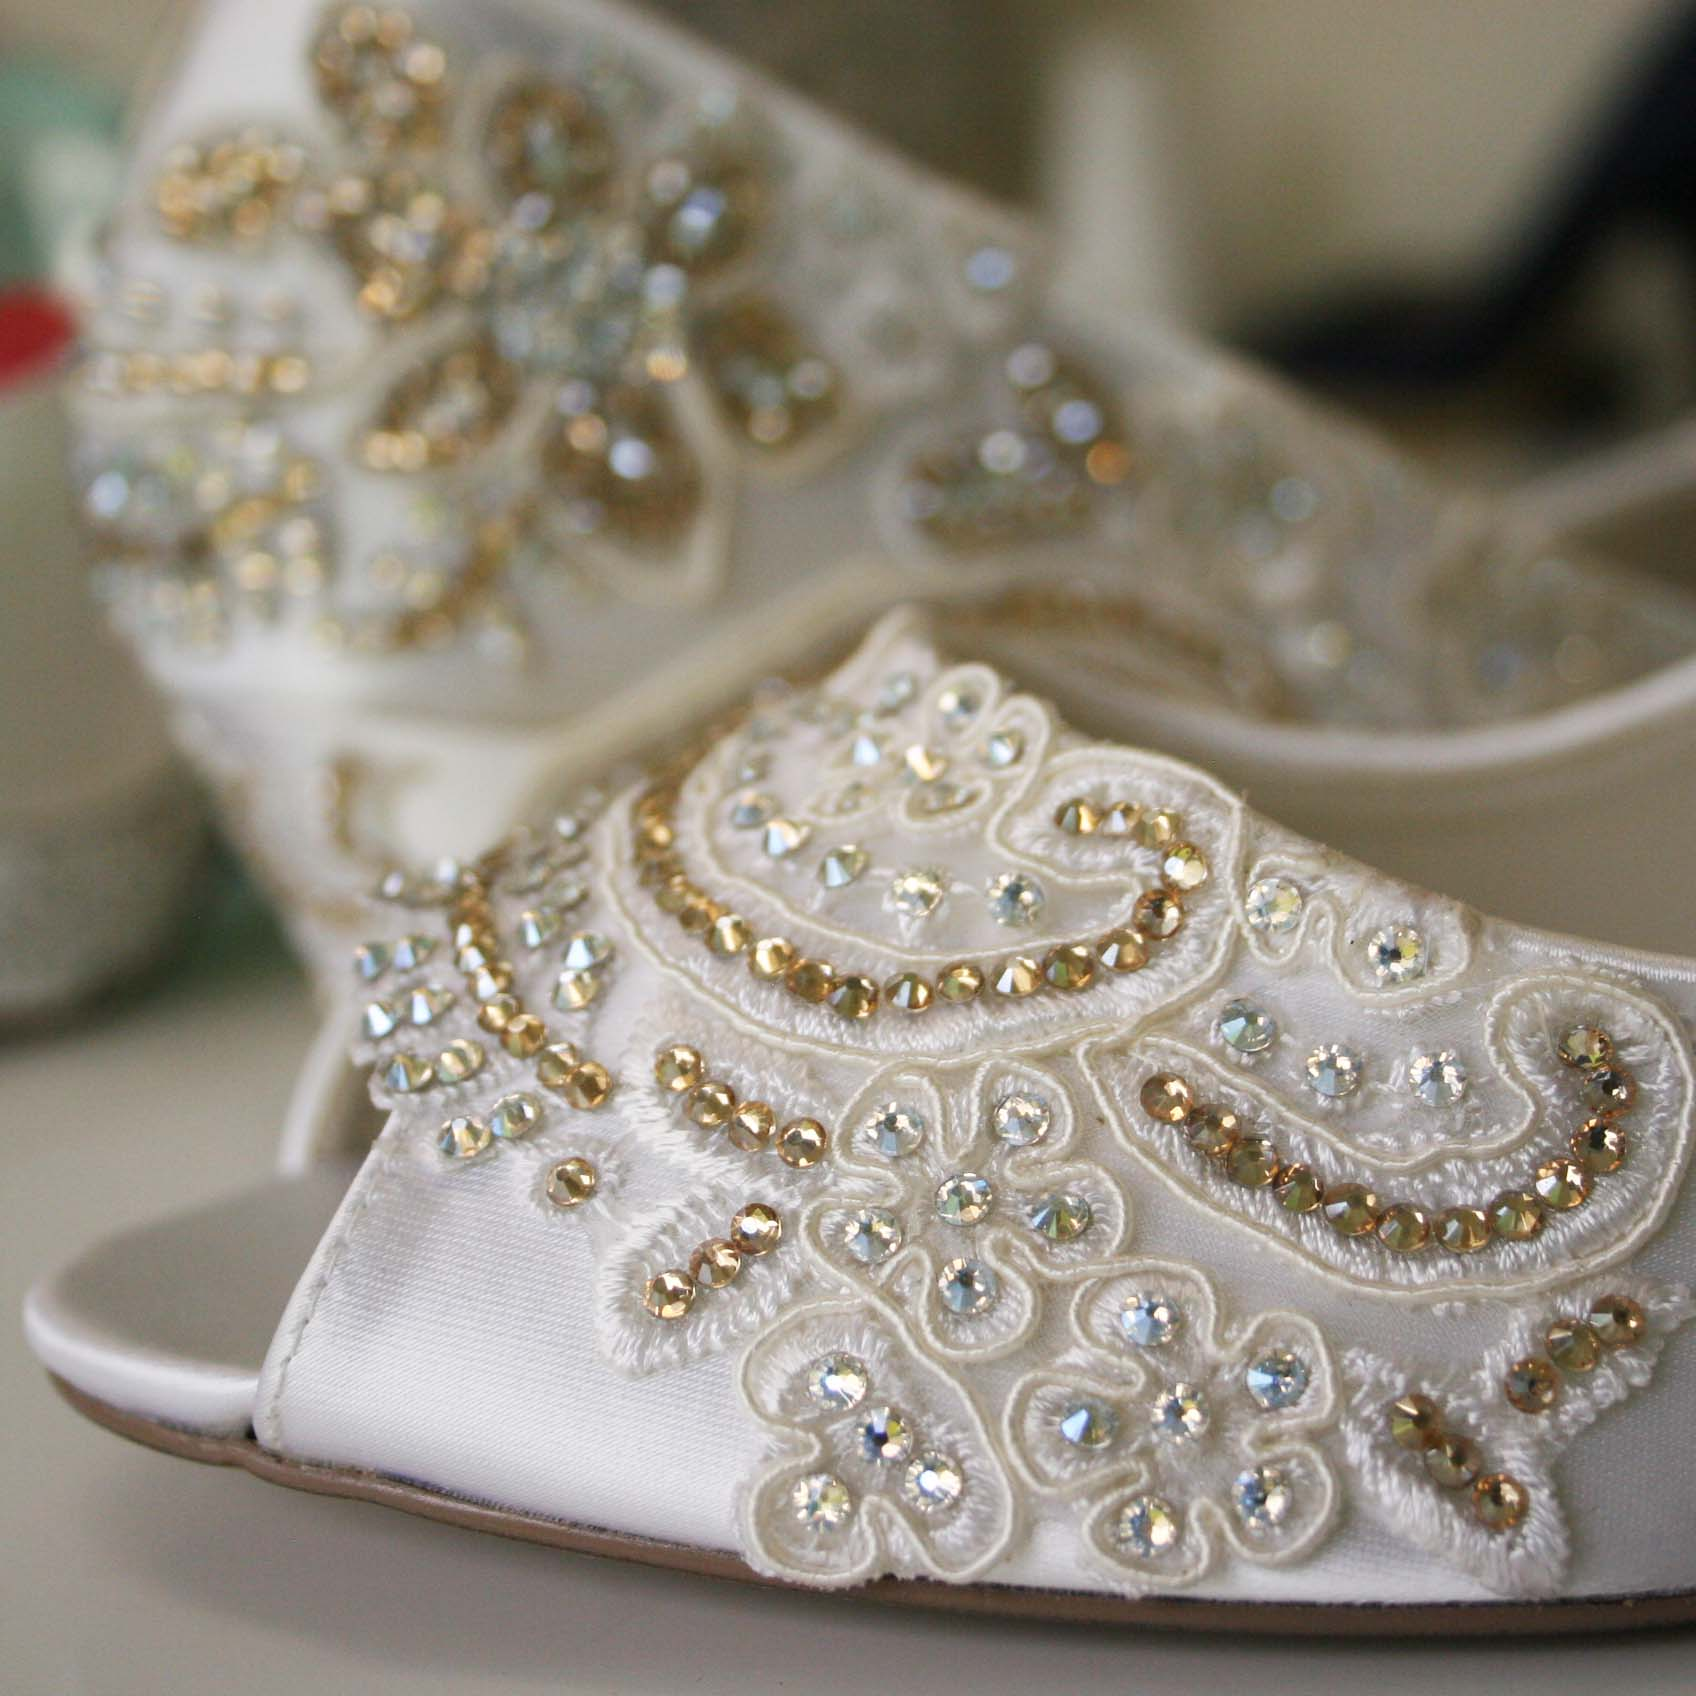 Crystal Wedge Wedding Shoes Custom Wedding Shoes by Ellie Wren